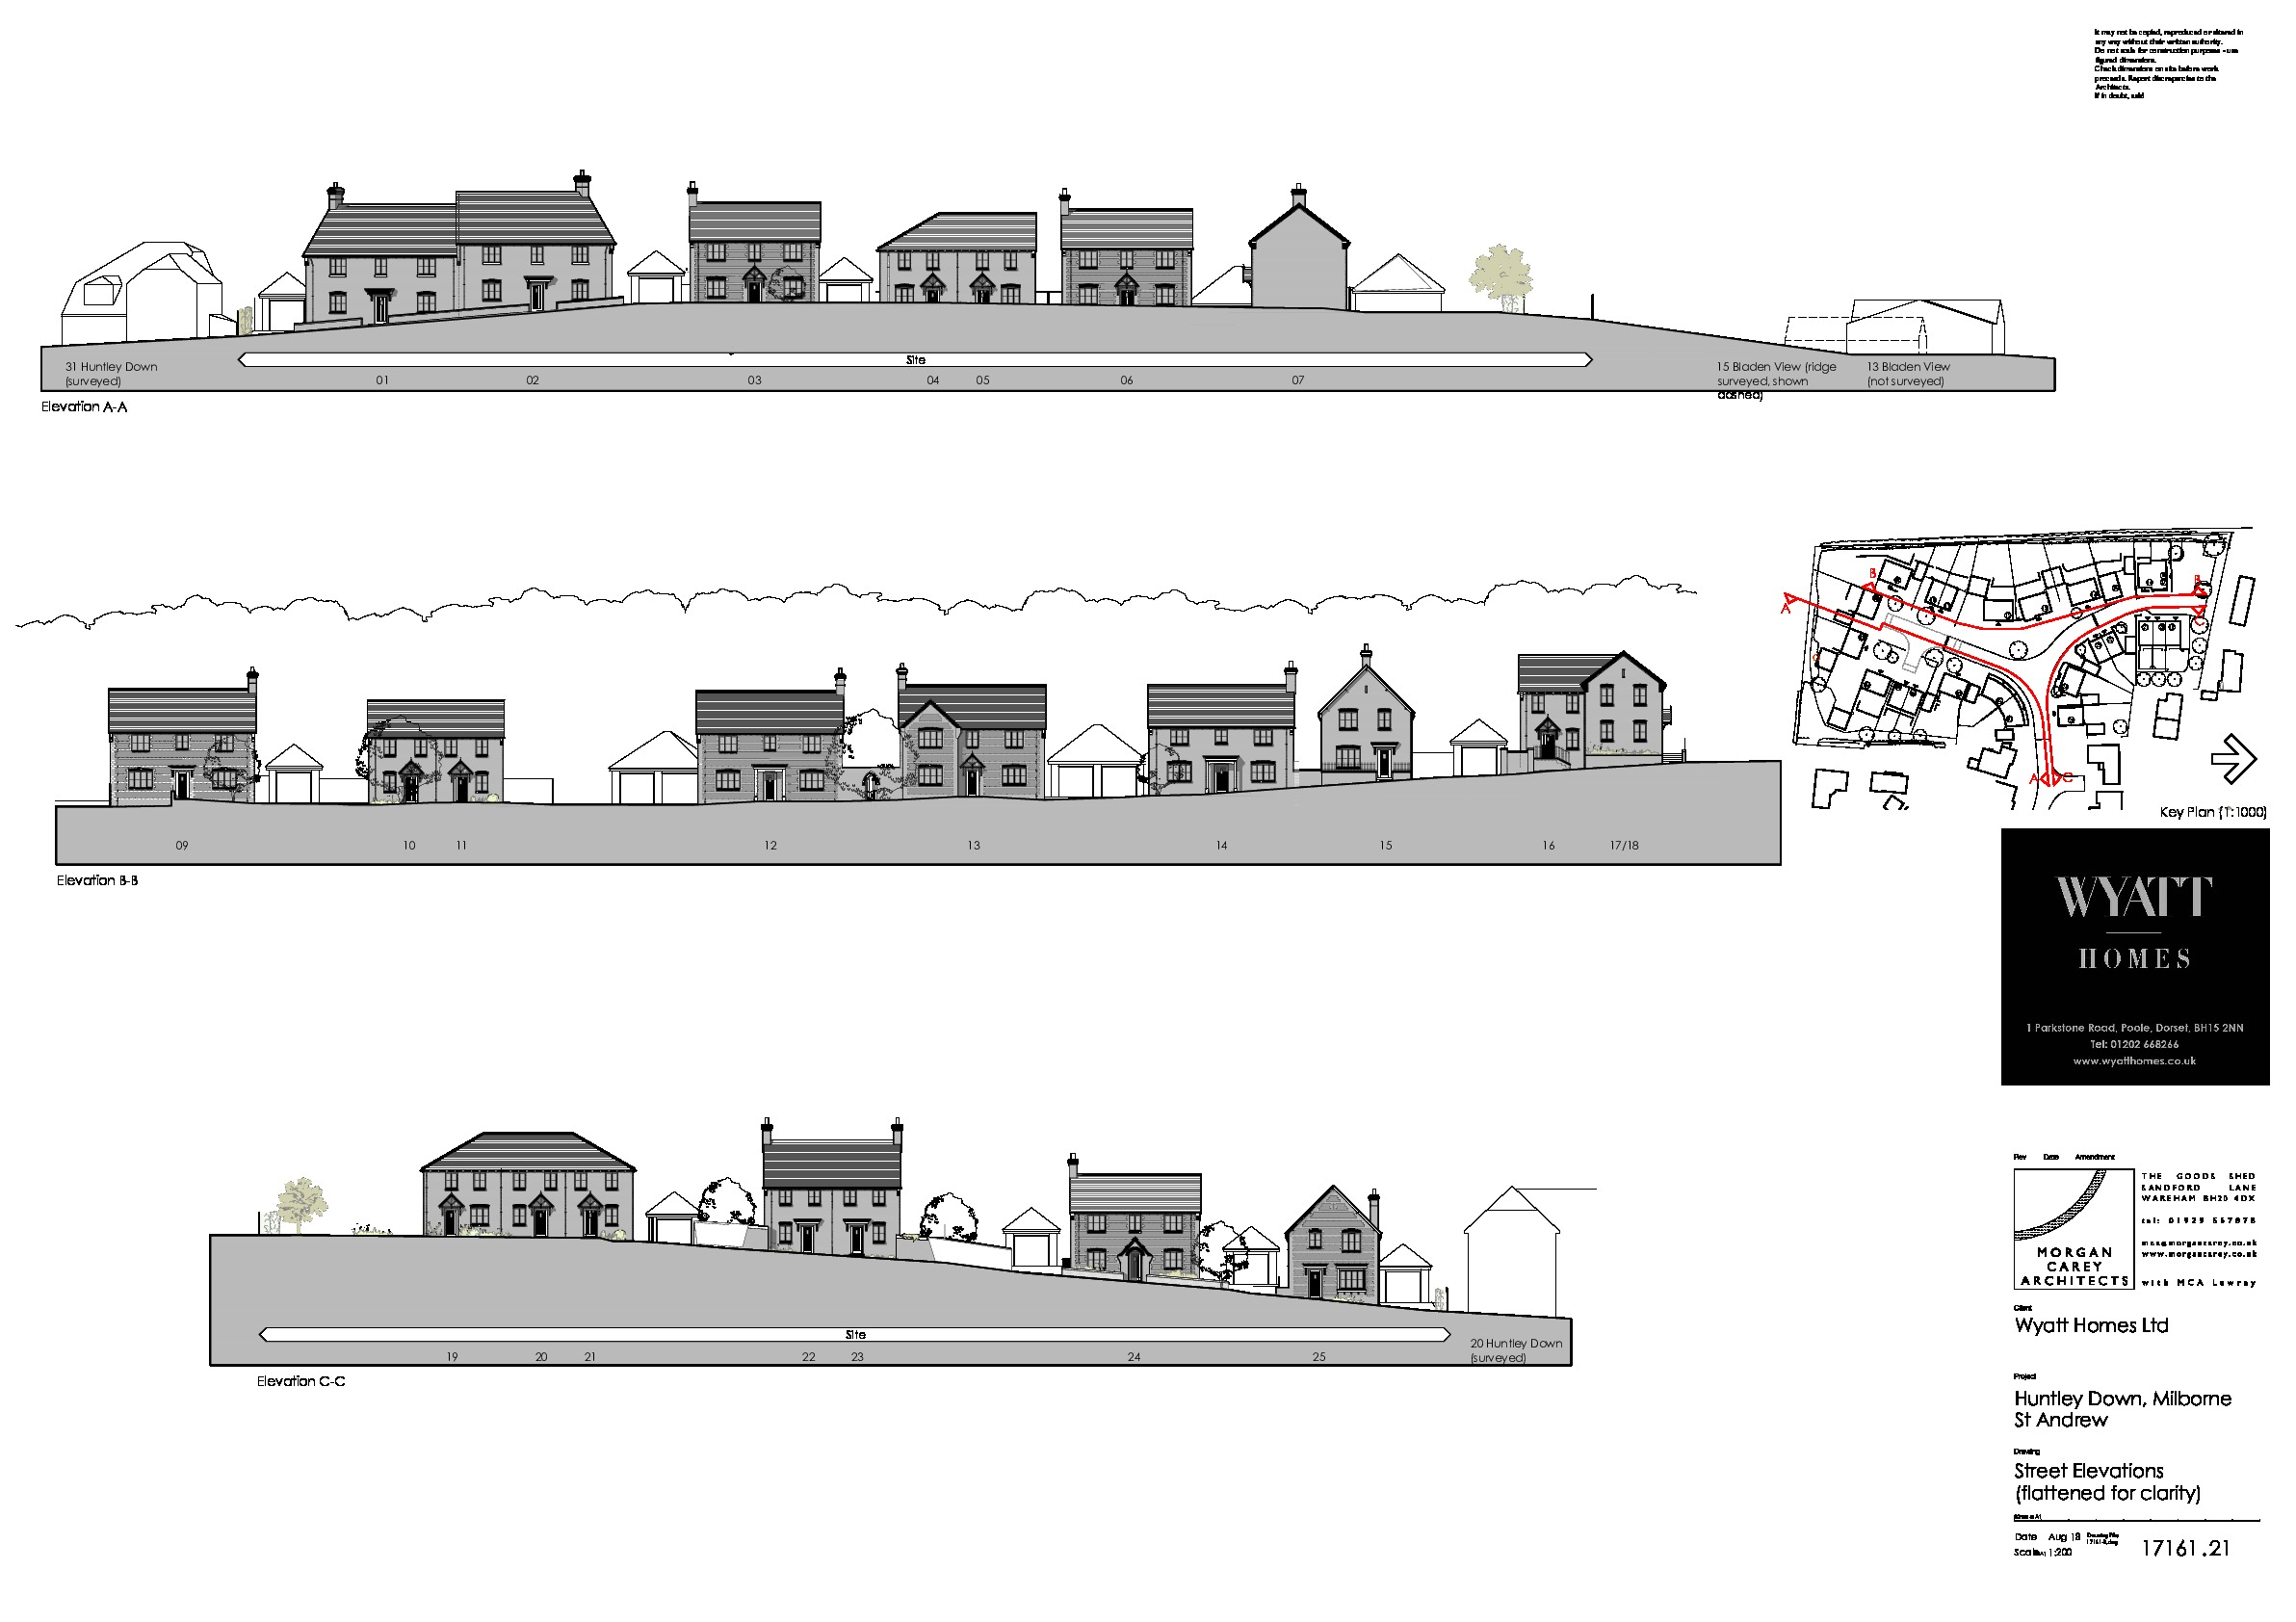 UPDATED: Plans for 25 homes in village